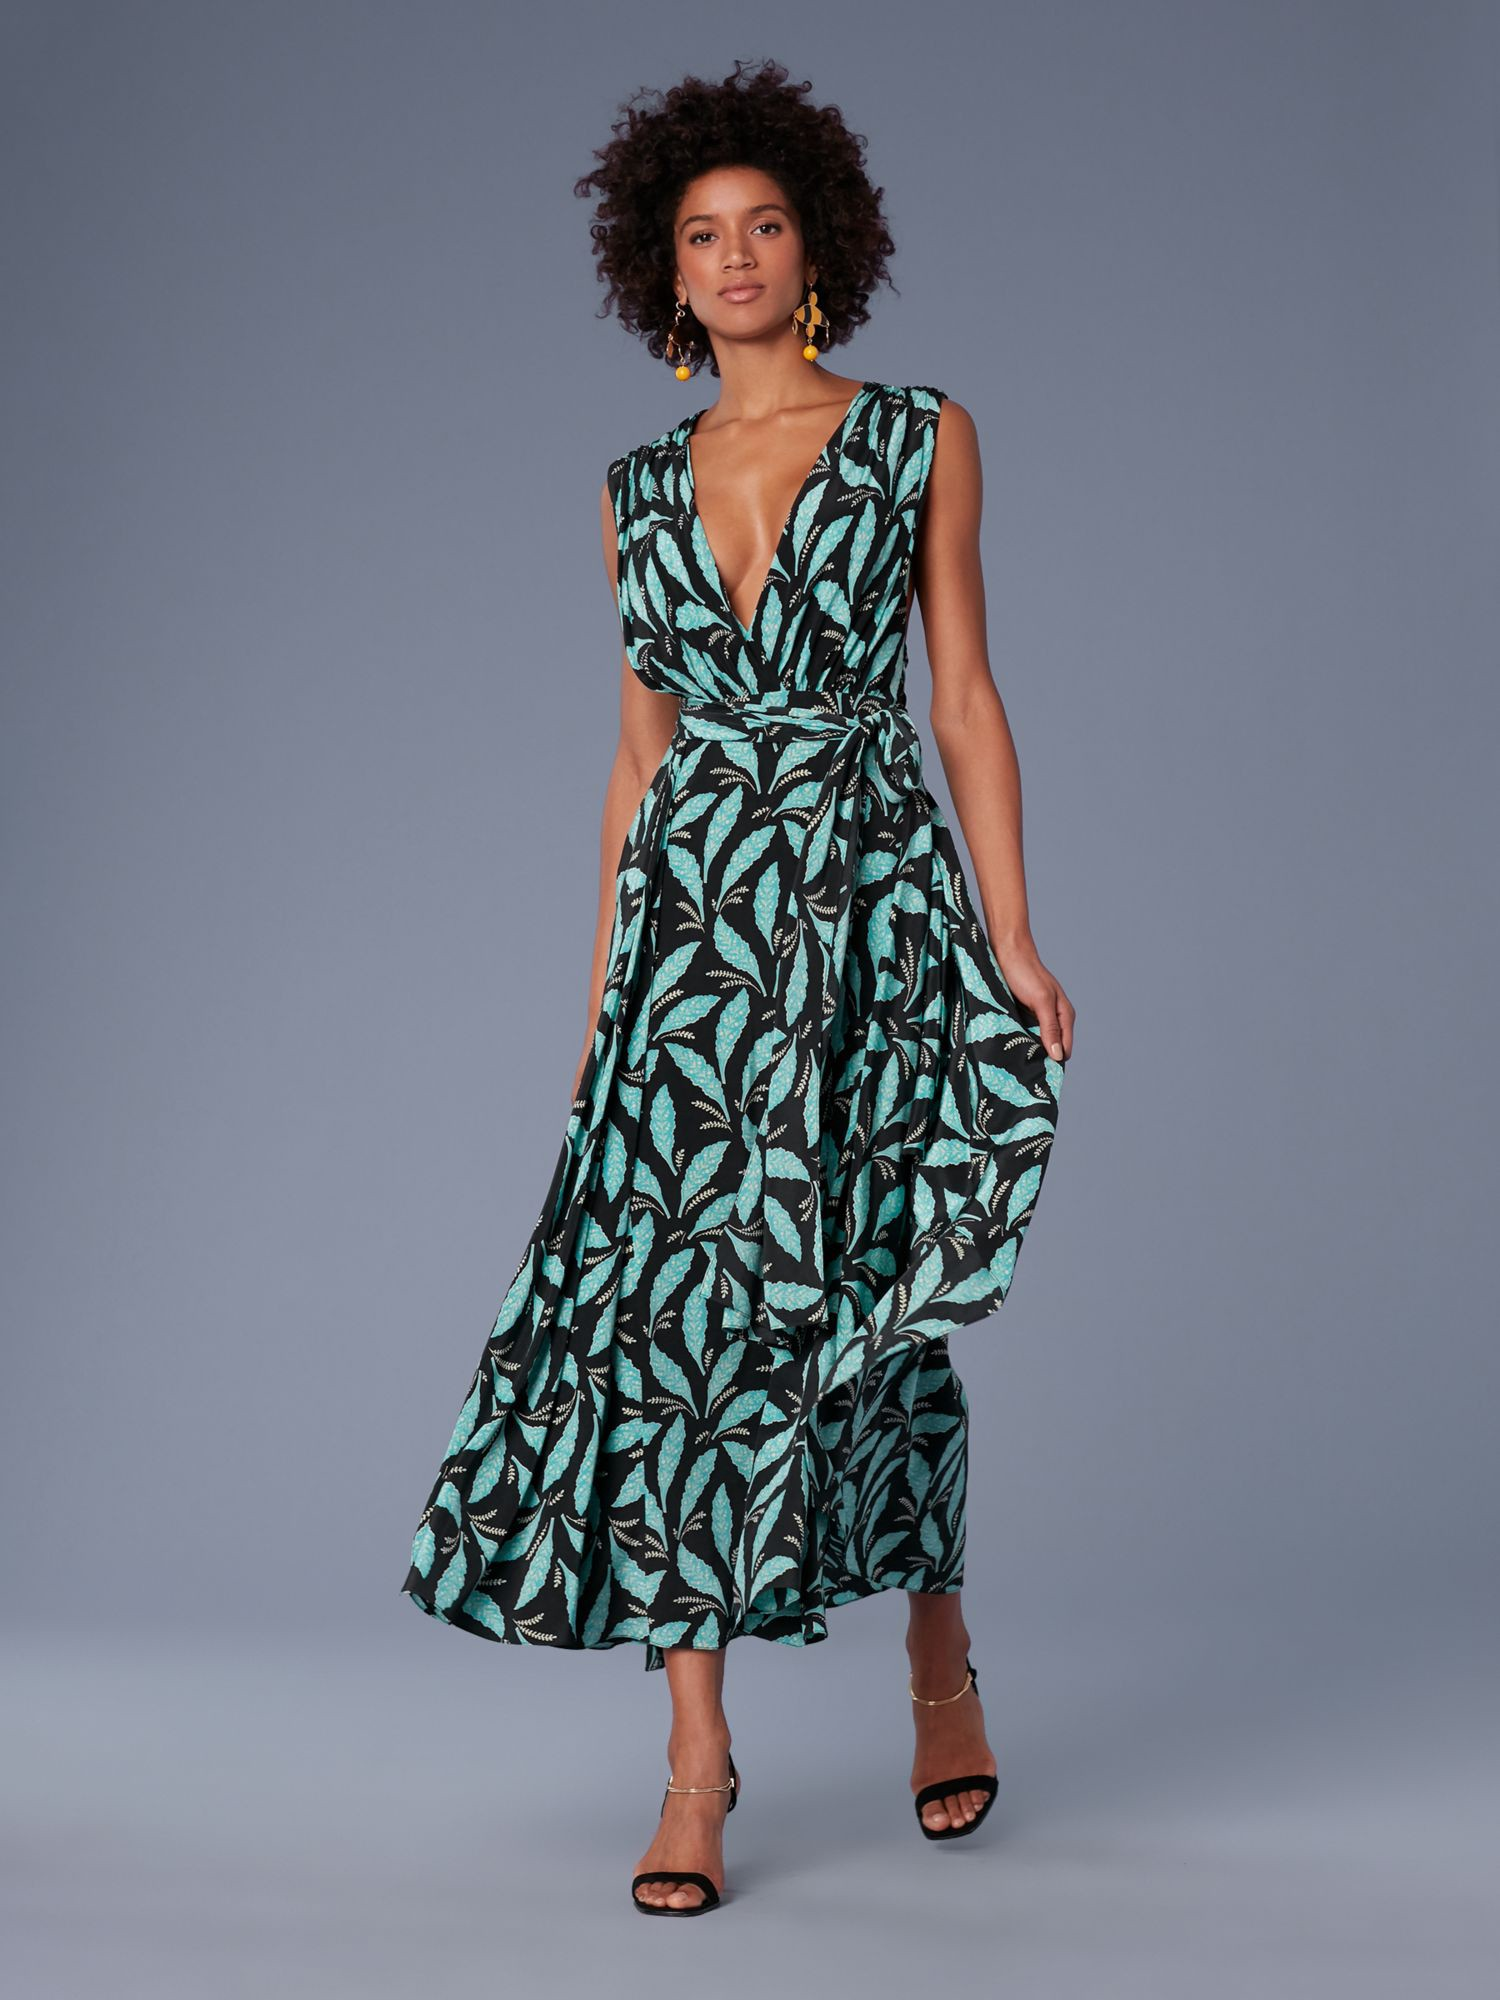 66c4be3ba11 Diane Von Furstenberg Dvf Sleeveless Draped V-Neck Maxi Dress - 2 ...